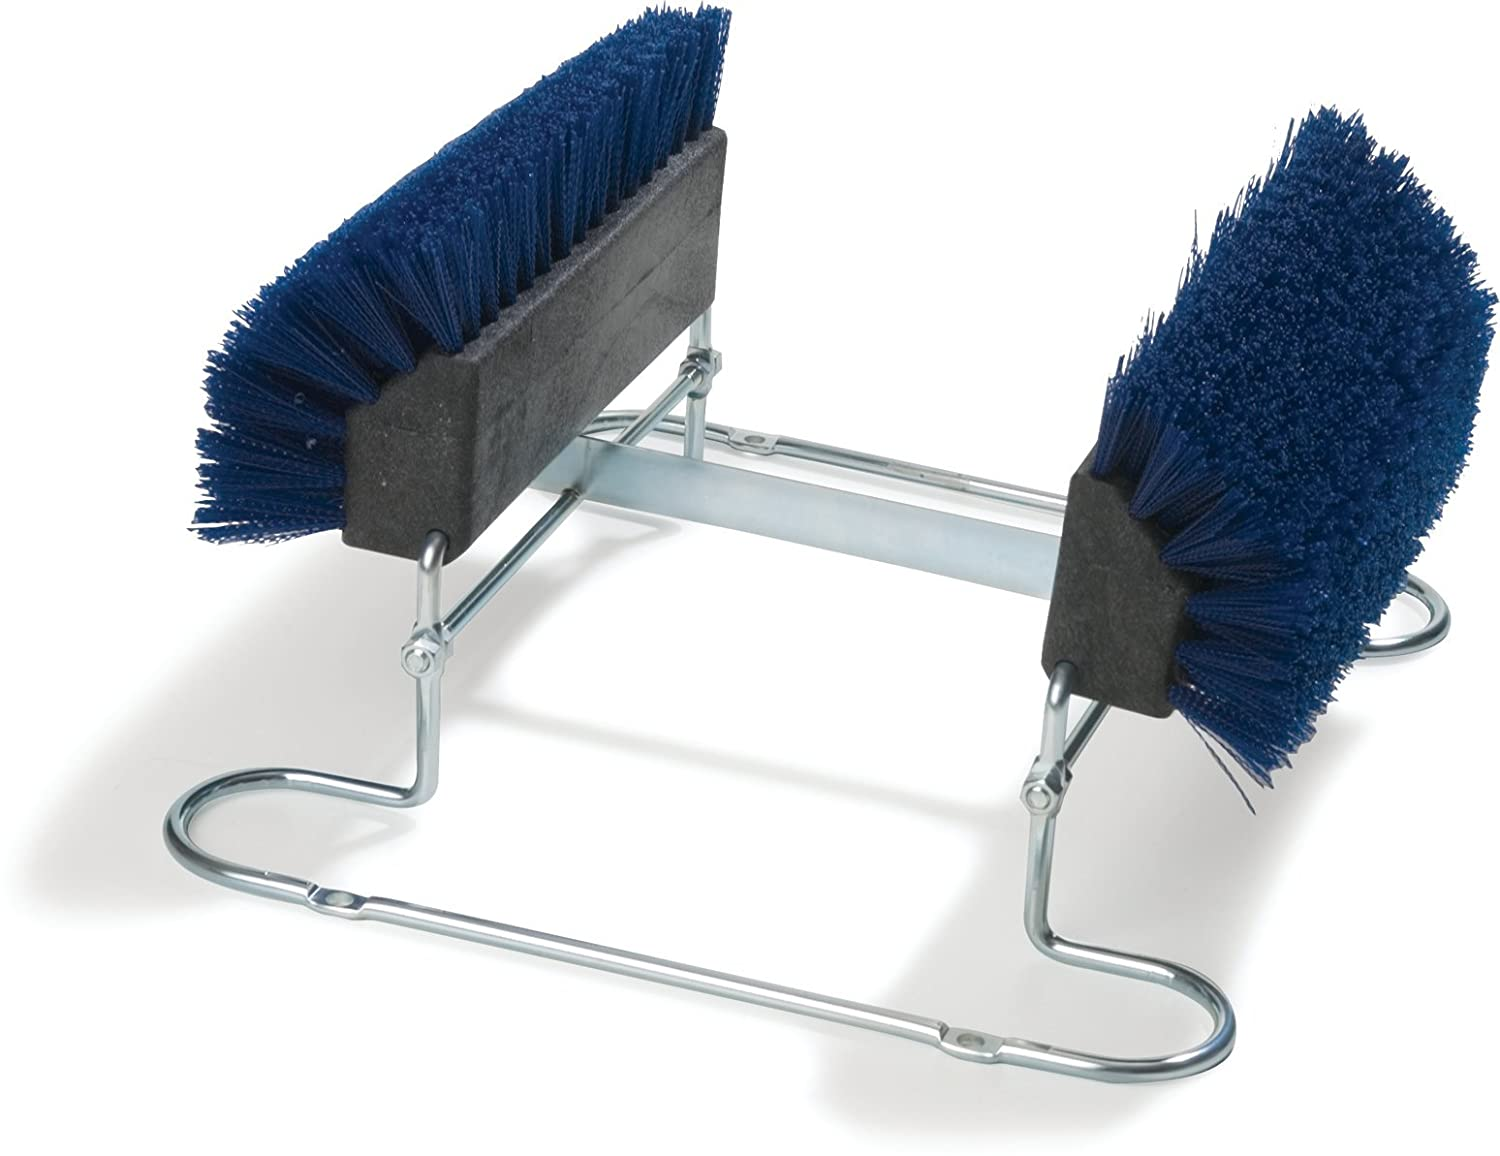 Carlisle 4042414 Commercial Boot N Shoe Brush Scraper with Chrome Plated Steel Frame Blue